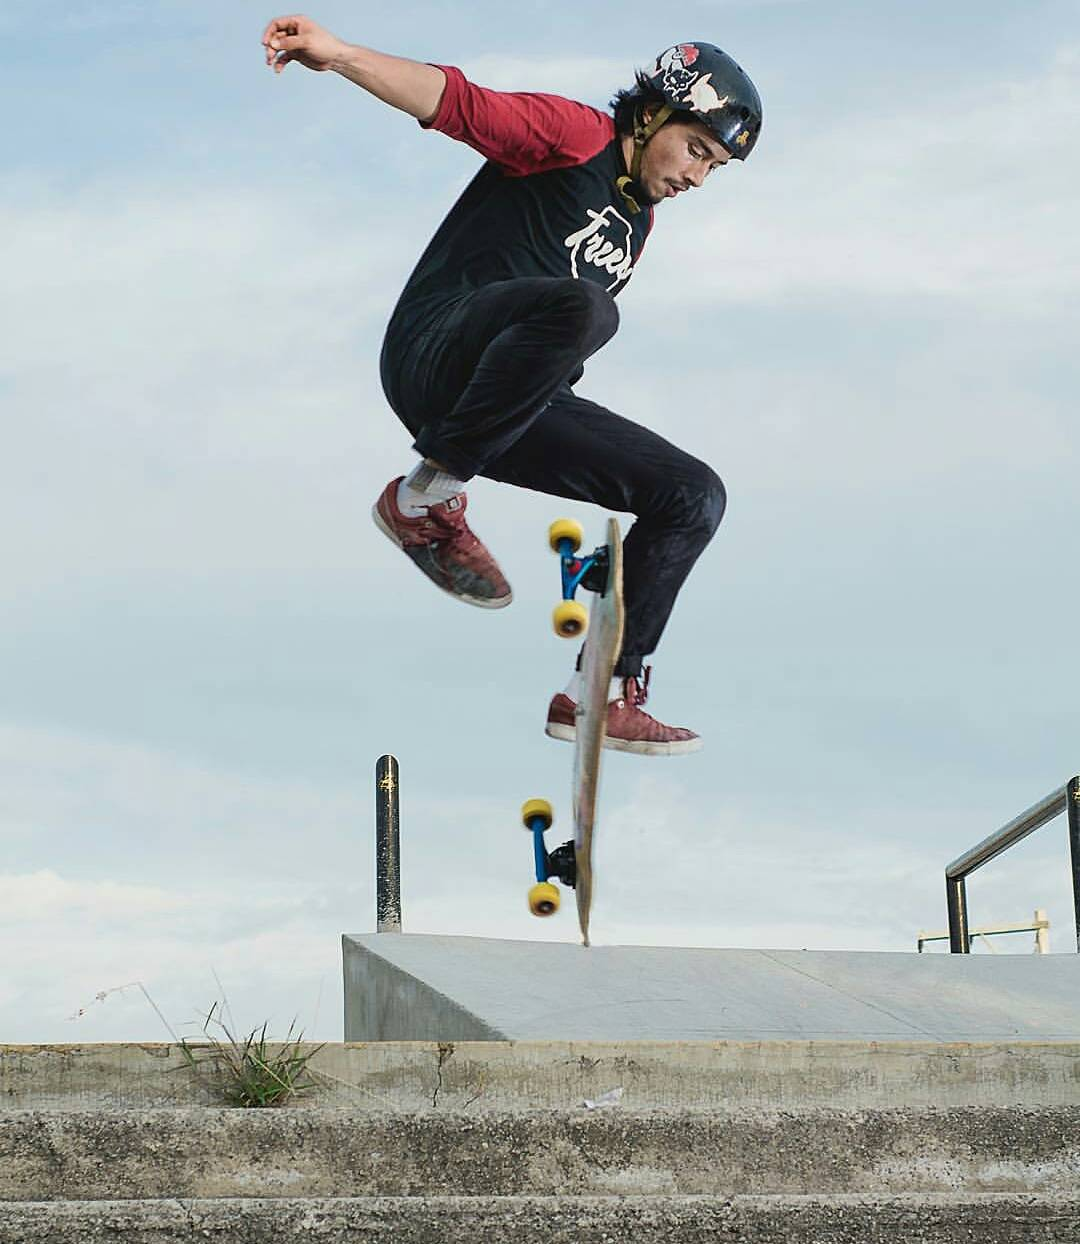 #LoadedAmbassador @yahzper_m getting his kick flip fix on his Cantellated Tesseract.  Yahzper skates with @marcosandoval_lbd everyday and can't let him have all the fun!  Photo: @fervegavega  #Treeeskateboarding #Cantellated #Tesseract #LoadedBoards...